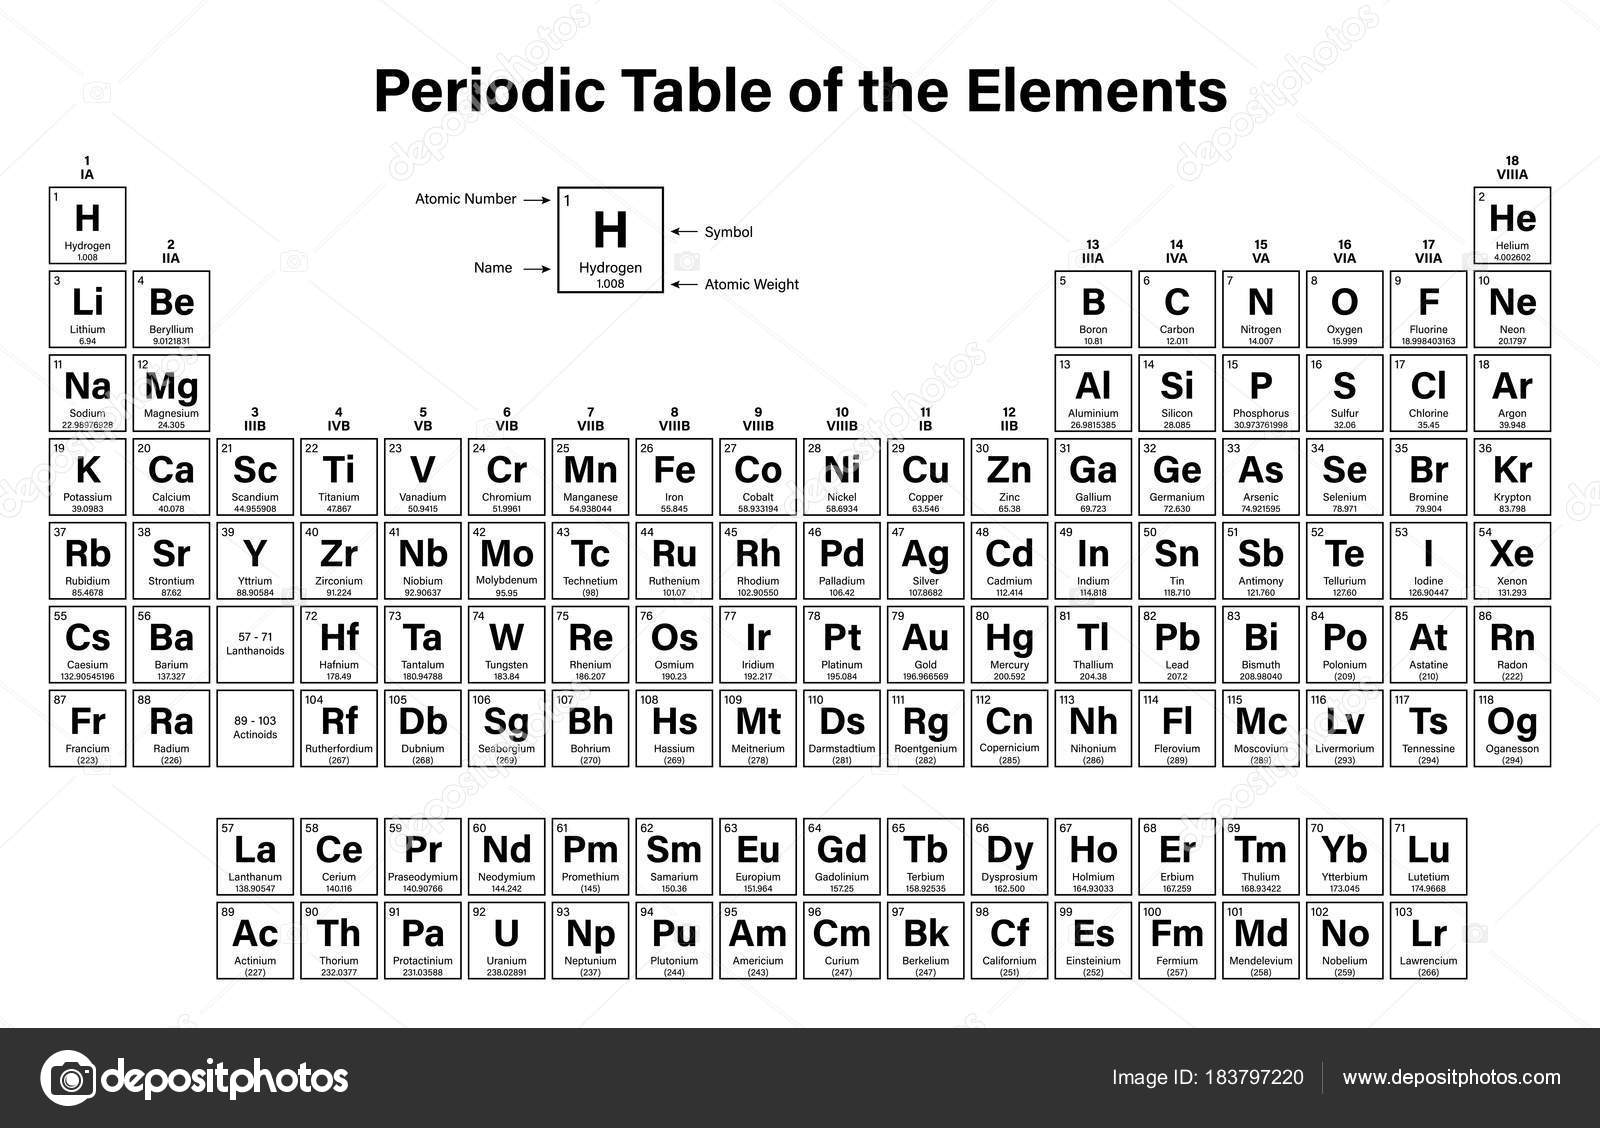 Periodic table elements vector illustration shows atomic number periodic table of the elements vector illustration shows atomic number symbol name and atomic weight including 2016 the four new elements nihonium urtaz Image collections